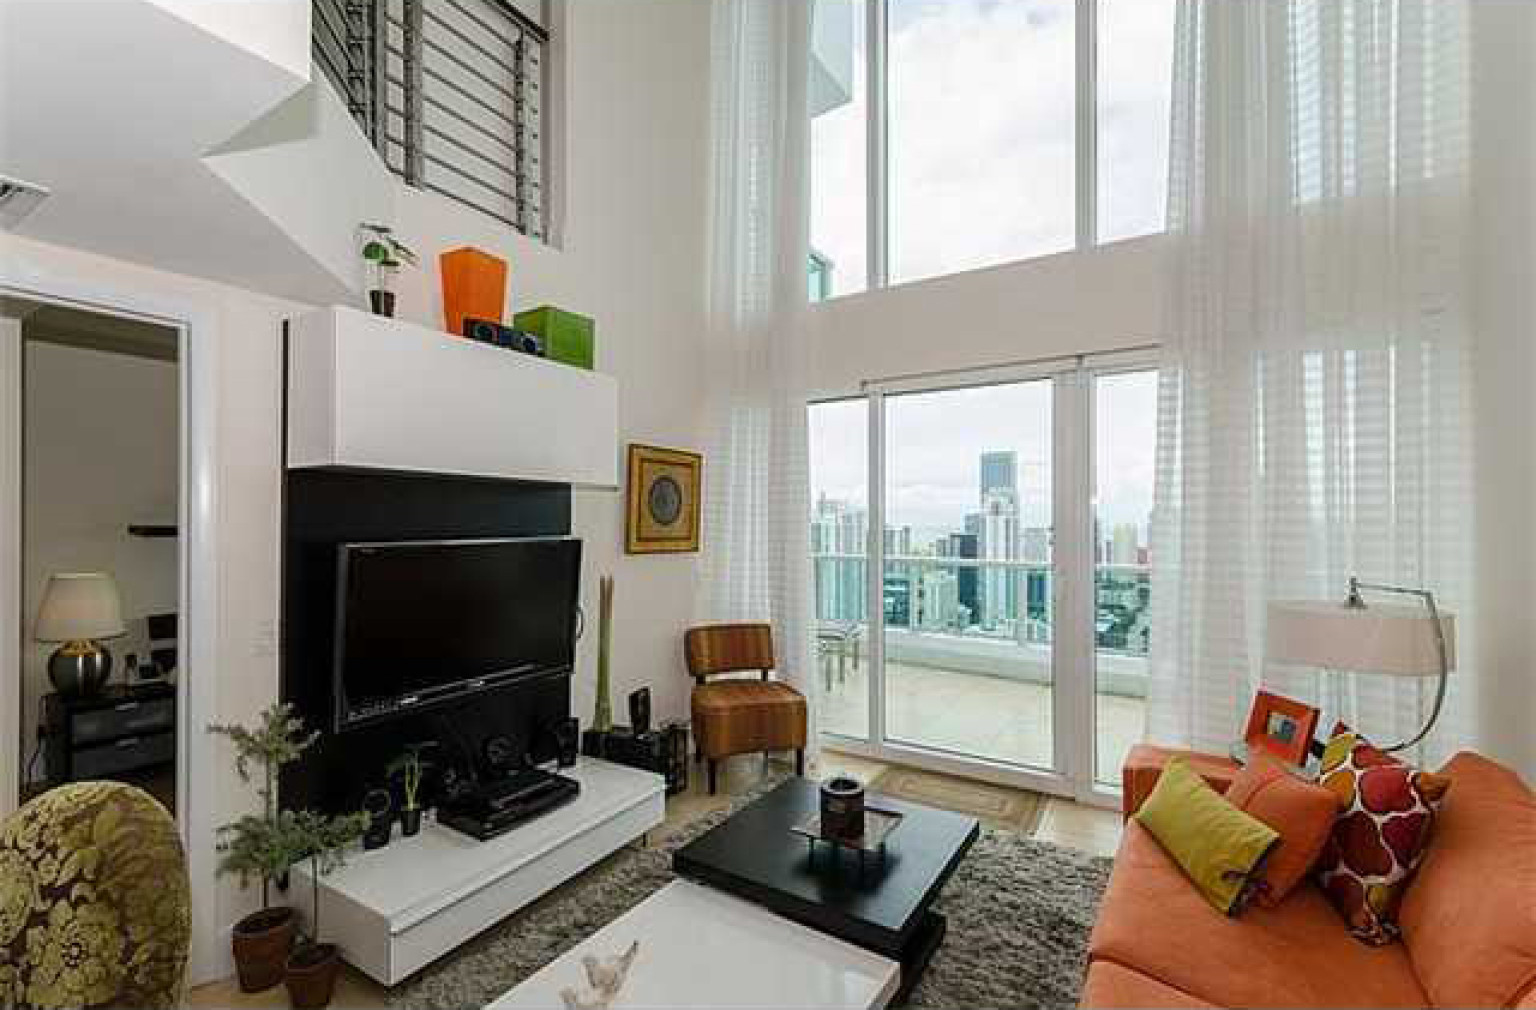 7 Chic Miami Lofts For Sale PHOTOS HuffPost